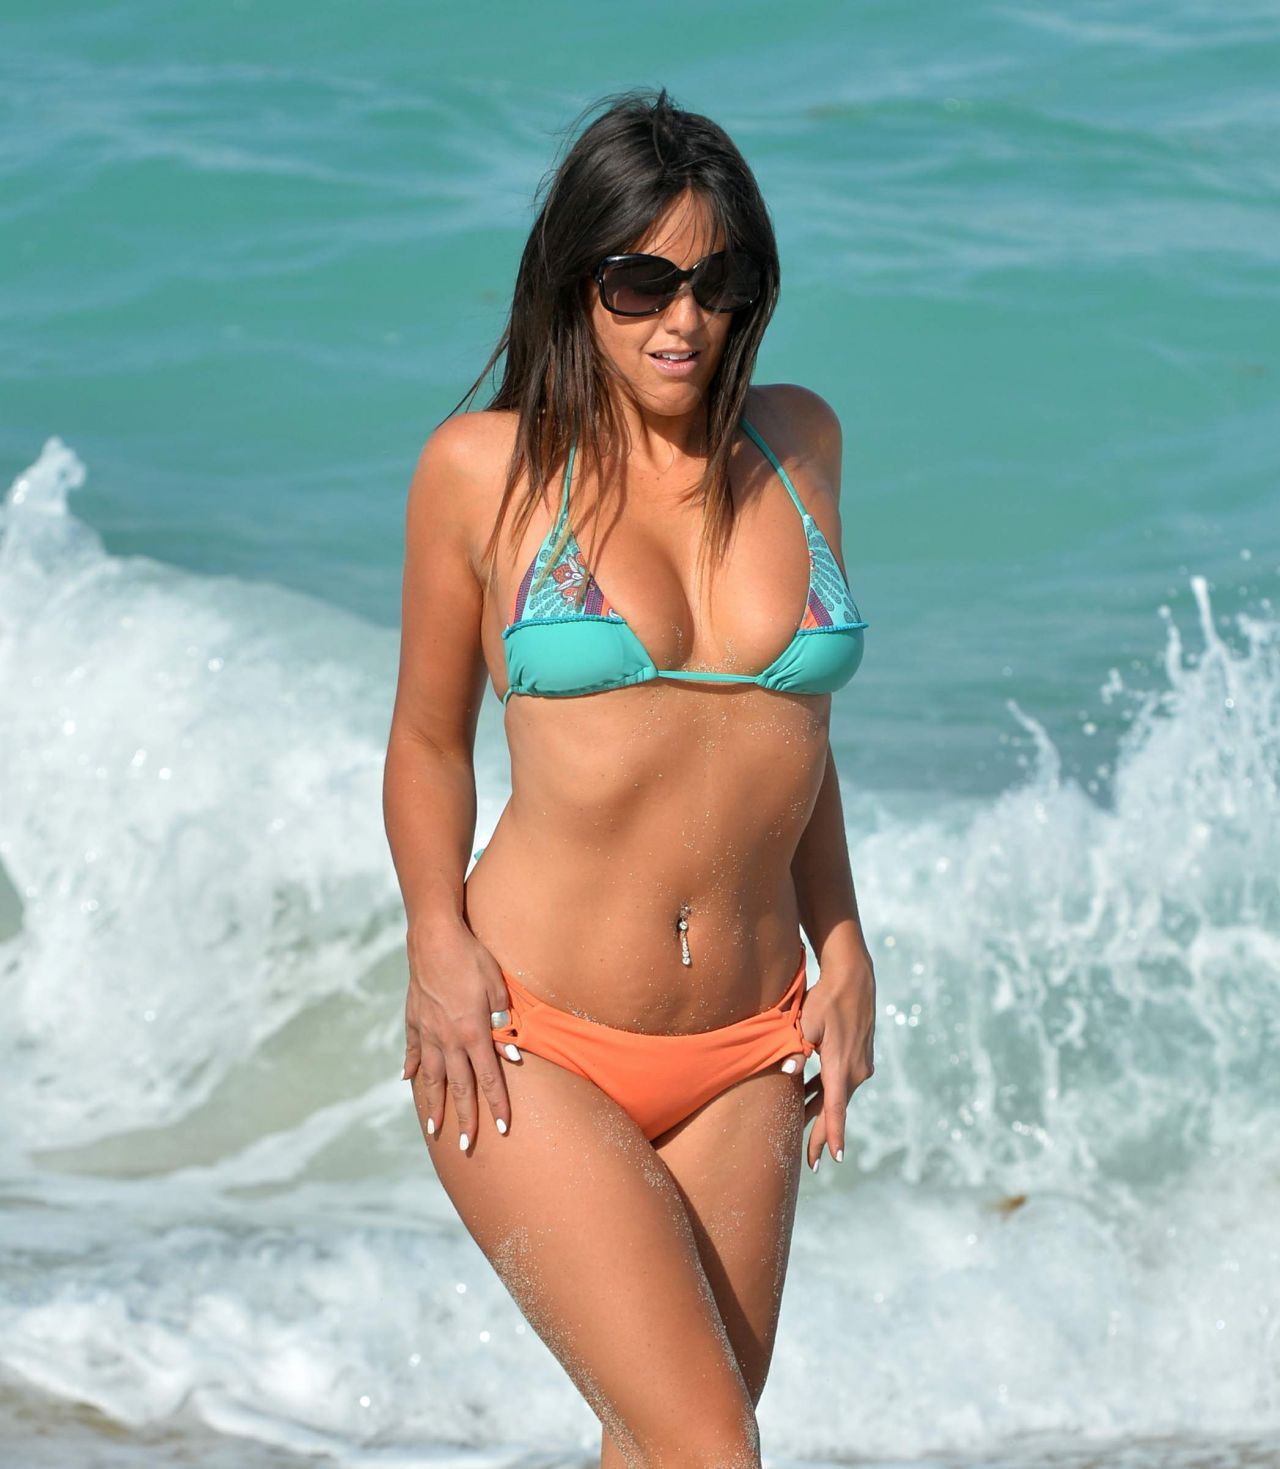 Claudia Romani in Bikini on South Beach in Miami 2 Pic 2 of 35